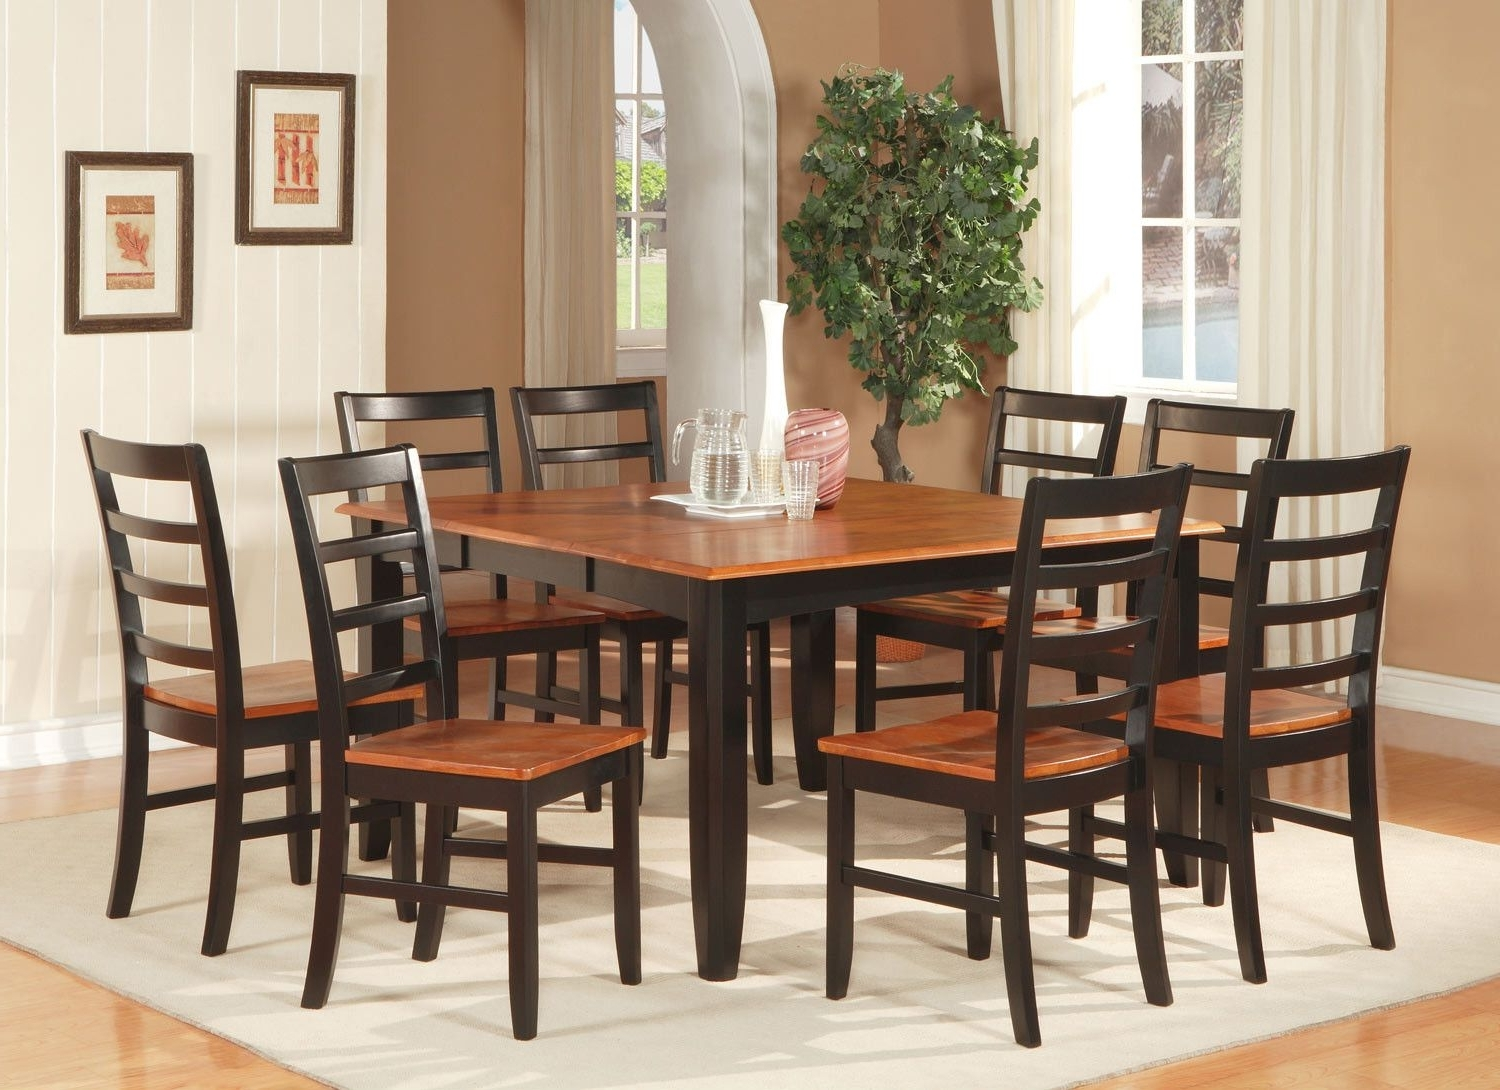 Parfait 7 Piece Dining Set In 2018 (Gallery 7 of 25)